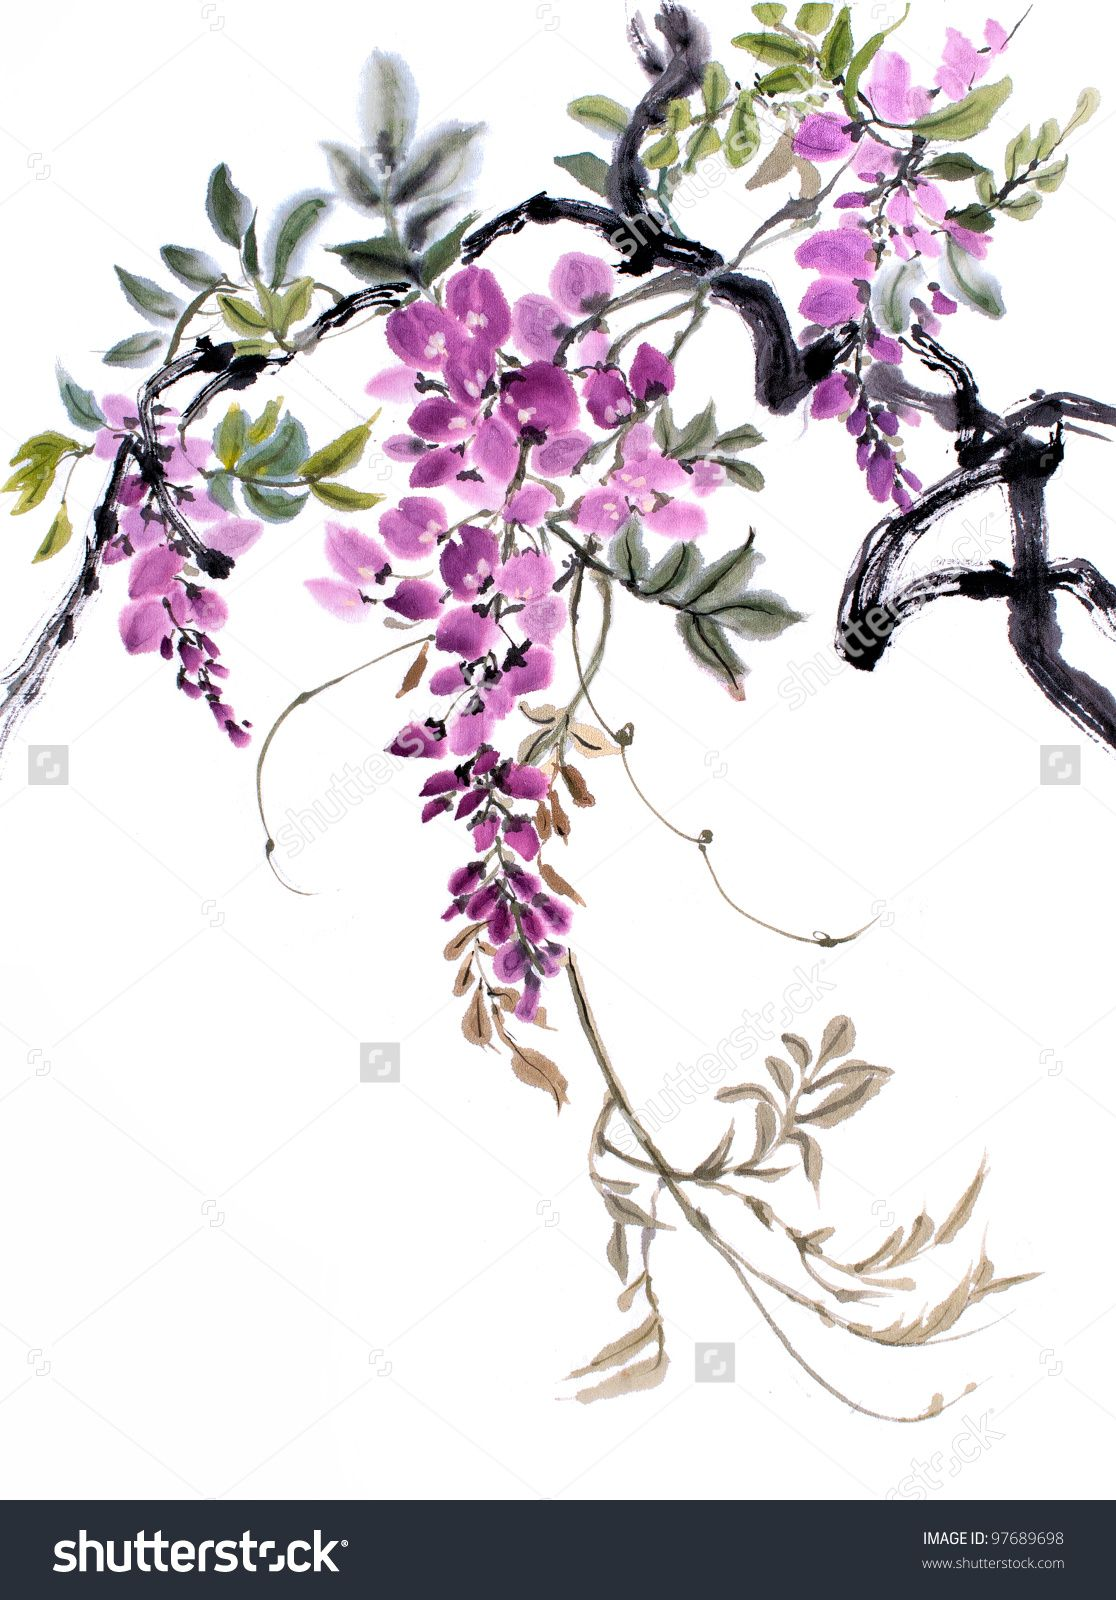 Original Art Chinese Watercolor Painting Of Wisteria Chinese Painting Flowers Flower Painting Floral Painting